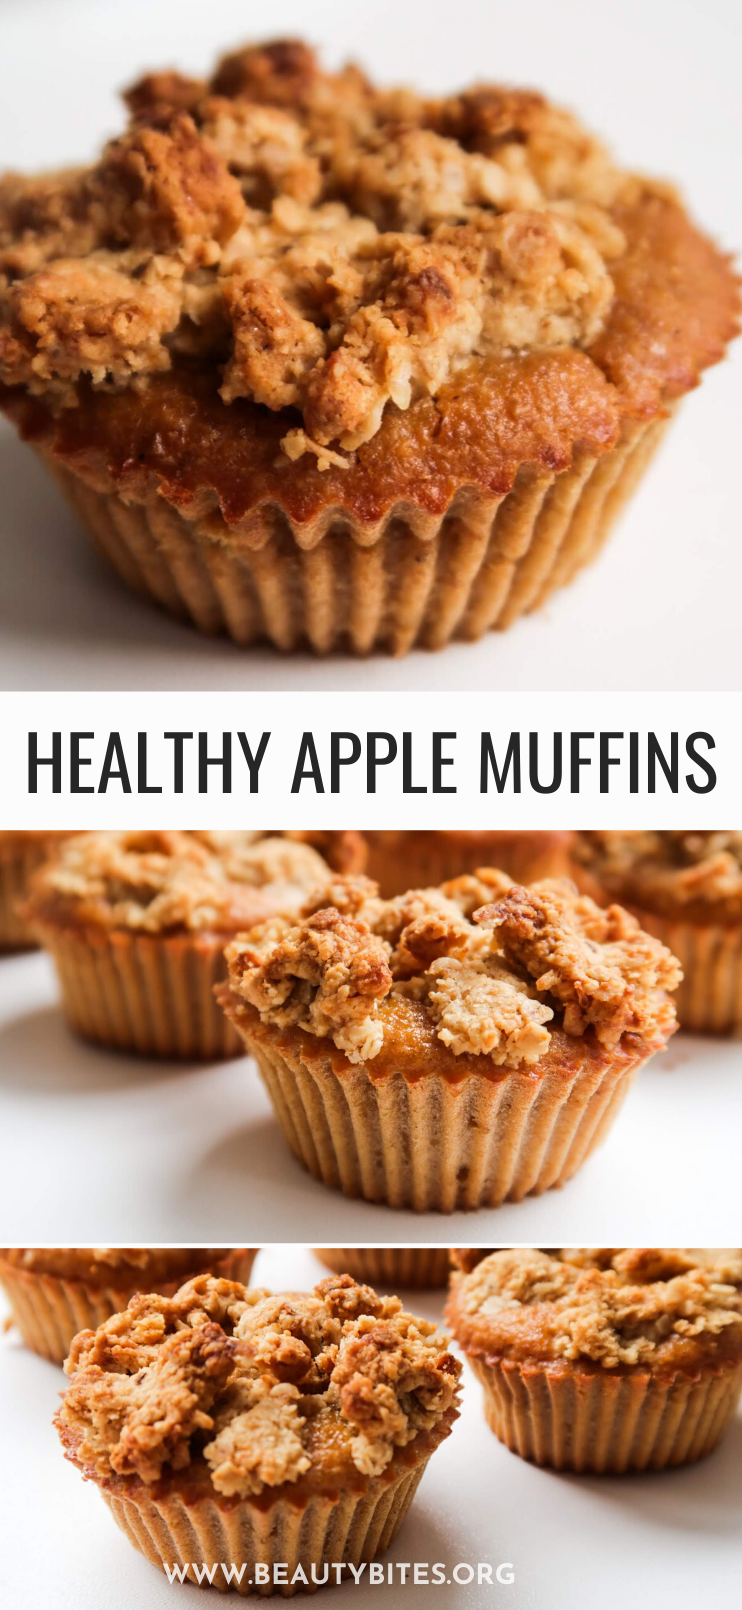 These healthy apple streusel oatmeal muffins are super easy to make and a very delicious healthy breakfast idea! These healthy breakfast muffins are a great meal prep breakfast recipe or healthy snack when you crave something sweet!